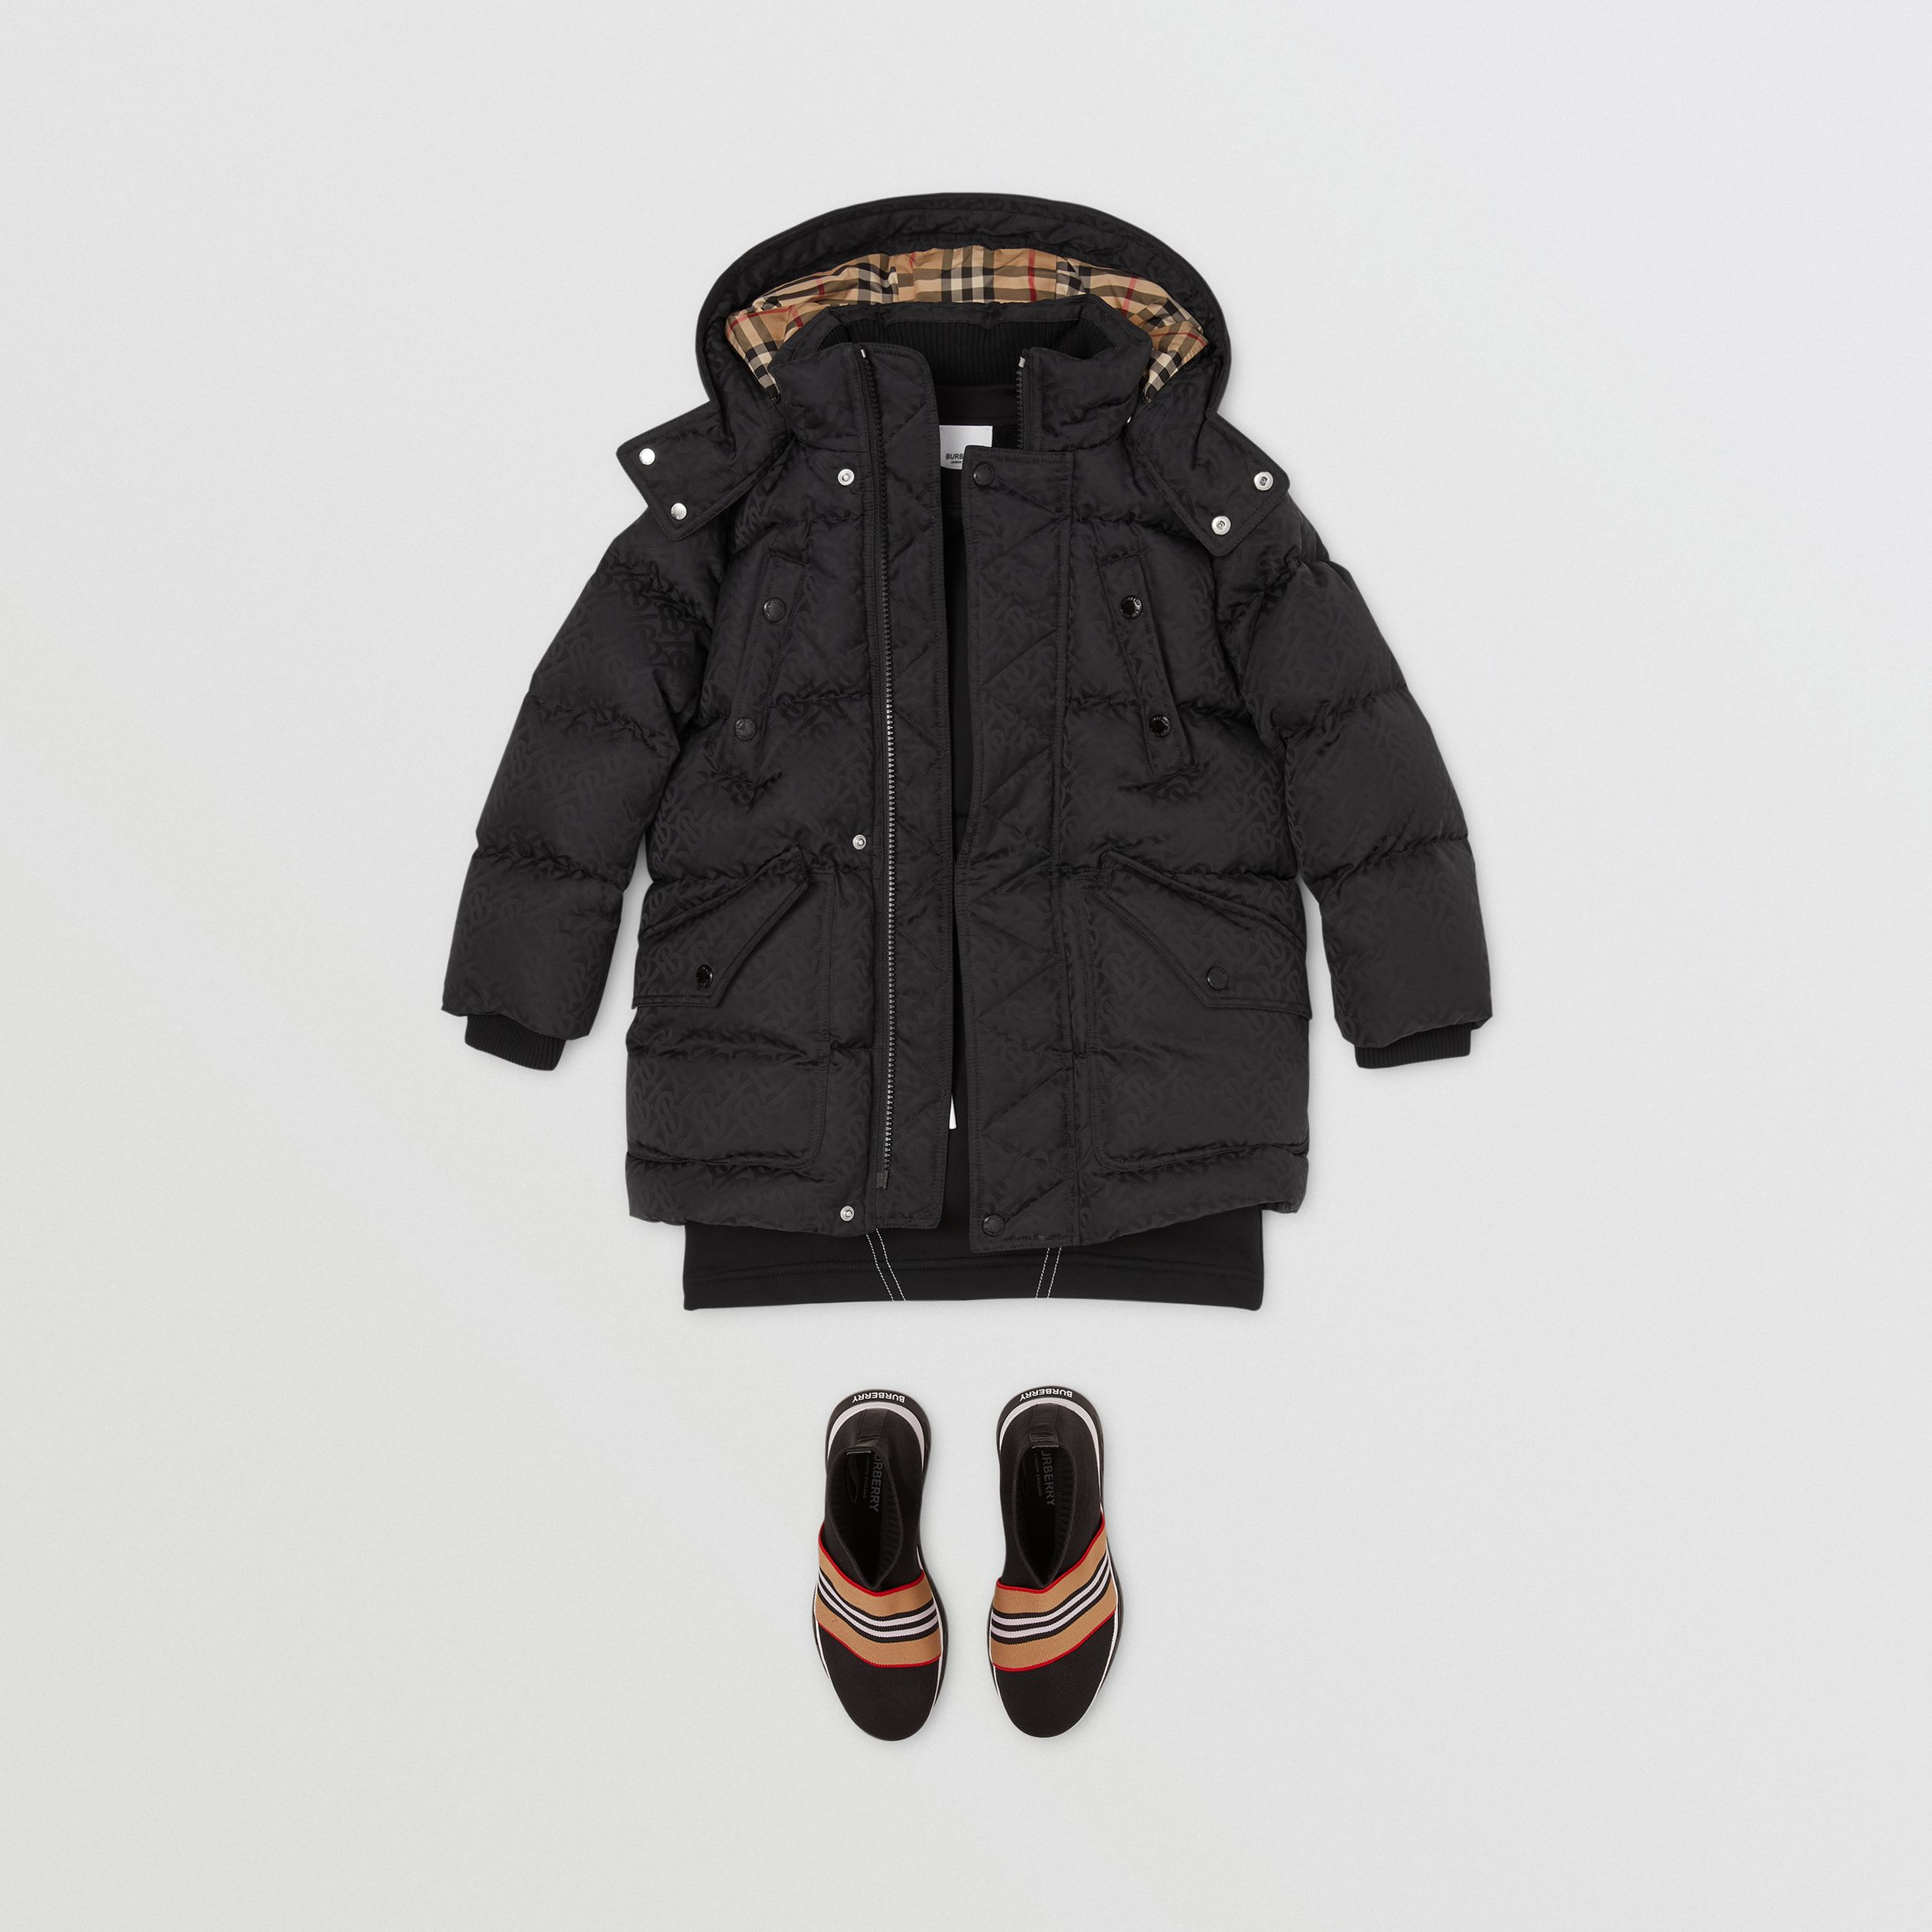 Detachable Hood Monogram Jacquard Puffer Coat in Black | Burberry - 4